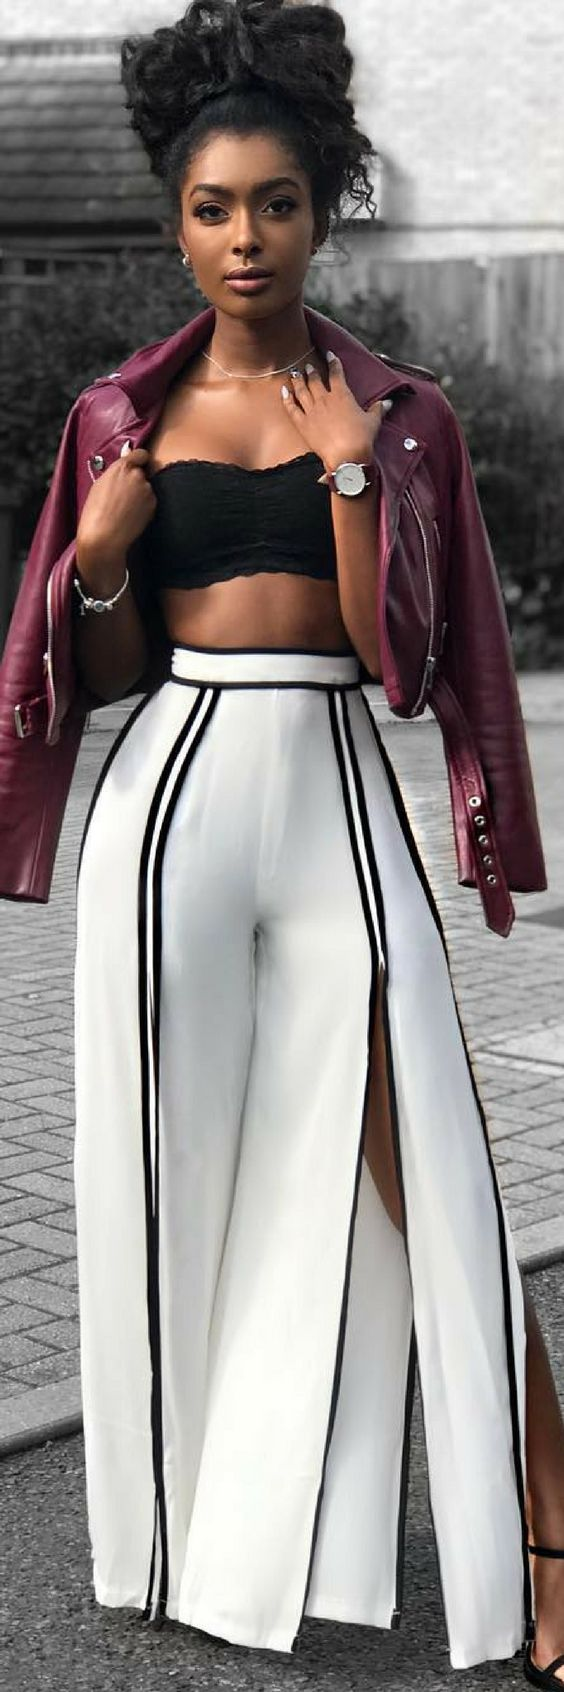 Wide Slit Pants Will Make You Look Fabulous This Fall - Look By Jourdan Riane http://ecstasymodels.blog/2017/10/09/wide-slit-pants-look-jourdan-riane/